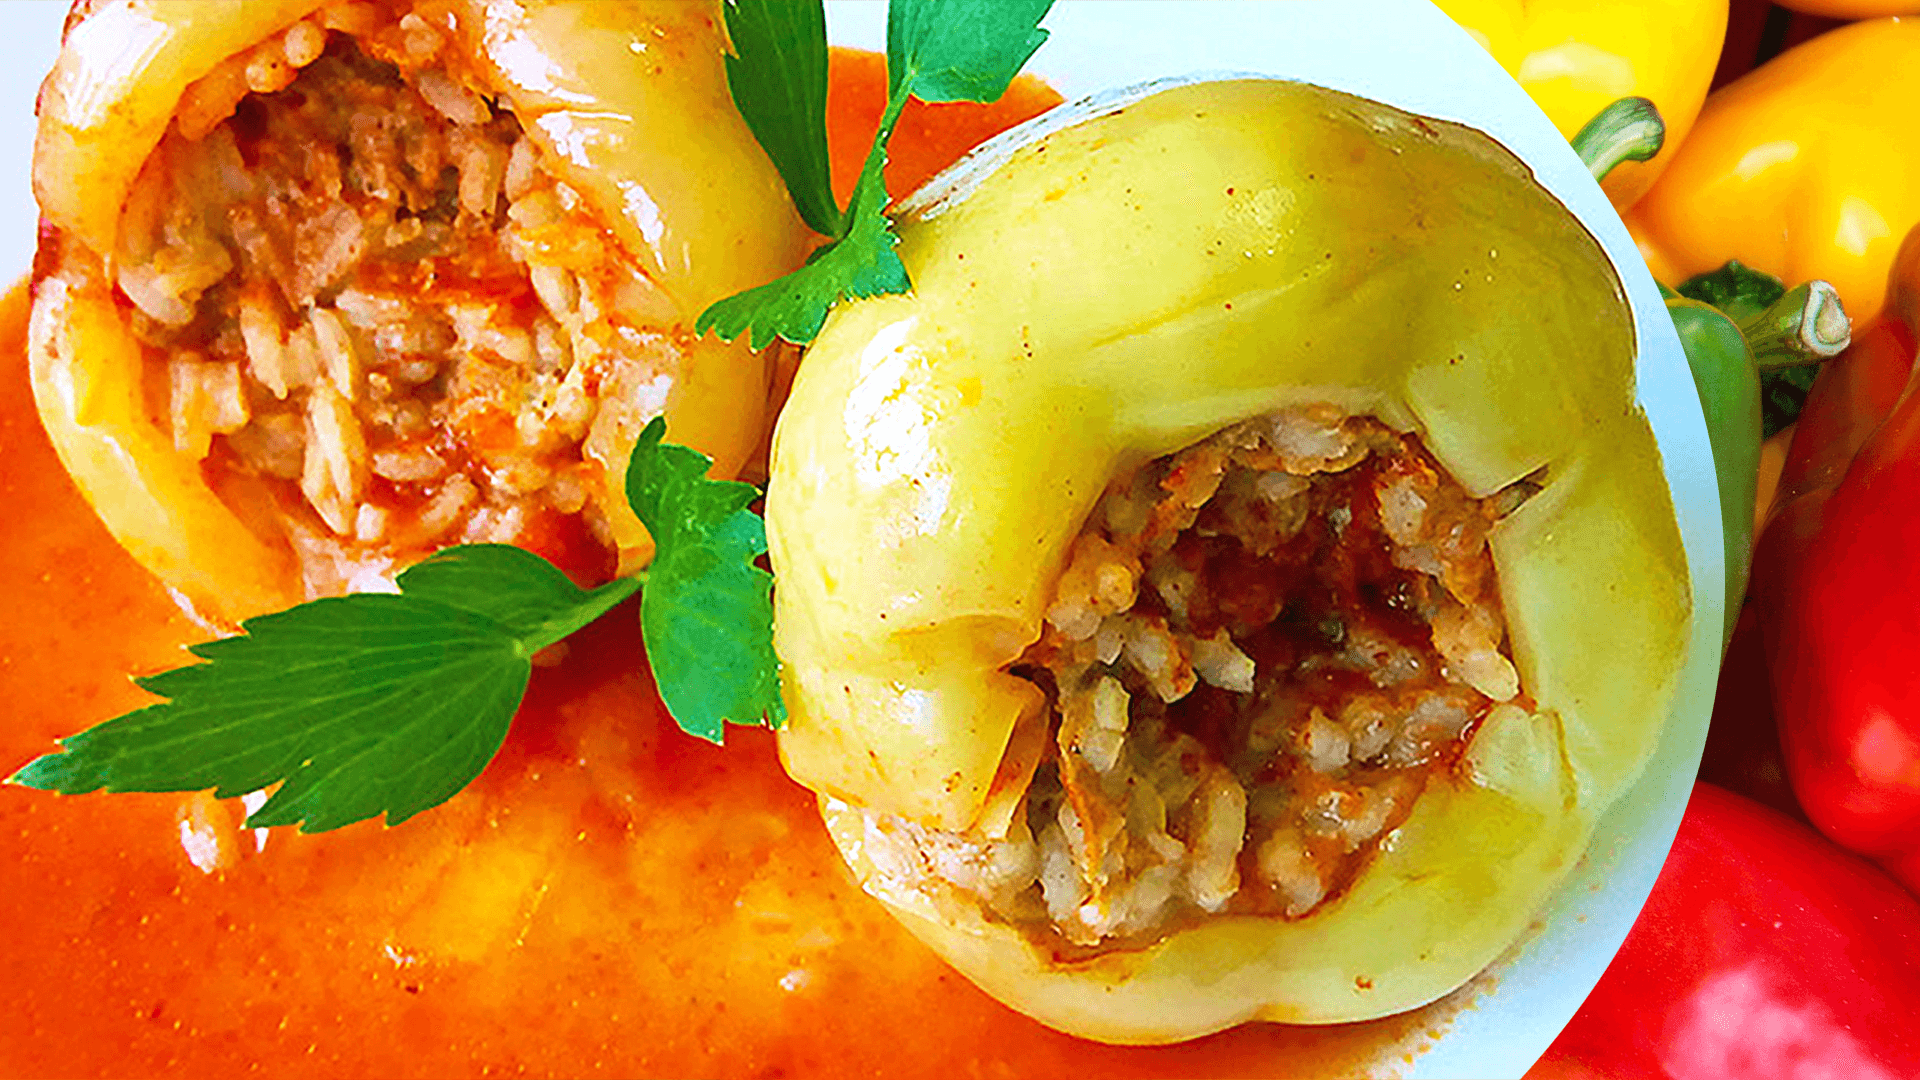 Stuffed Bell Peppers Recipe in Tomato Sauce (Easy Stuffed Peppers Recipe)